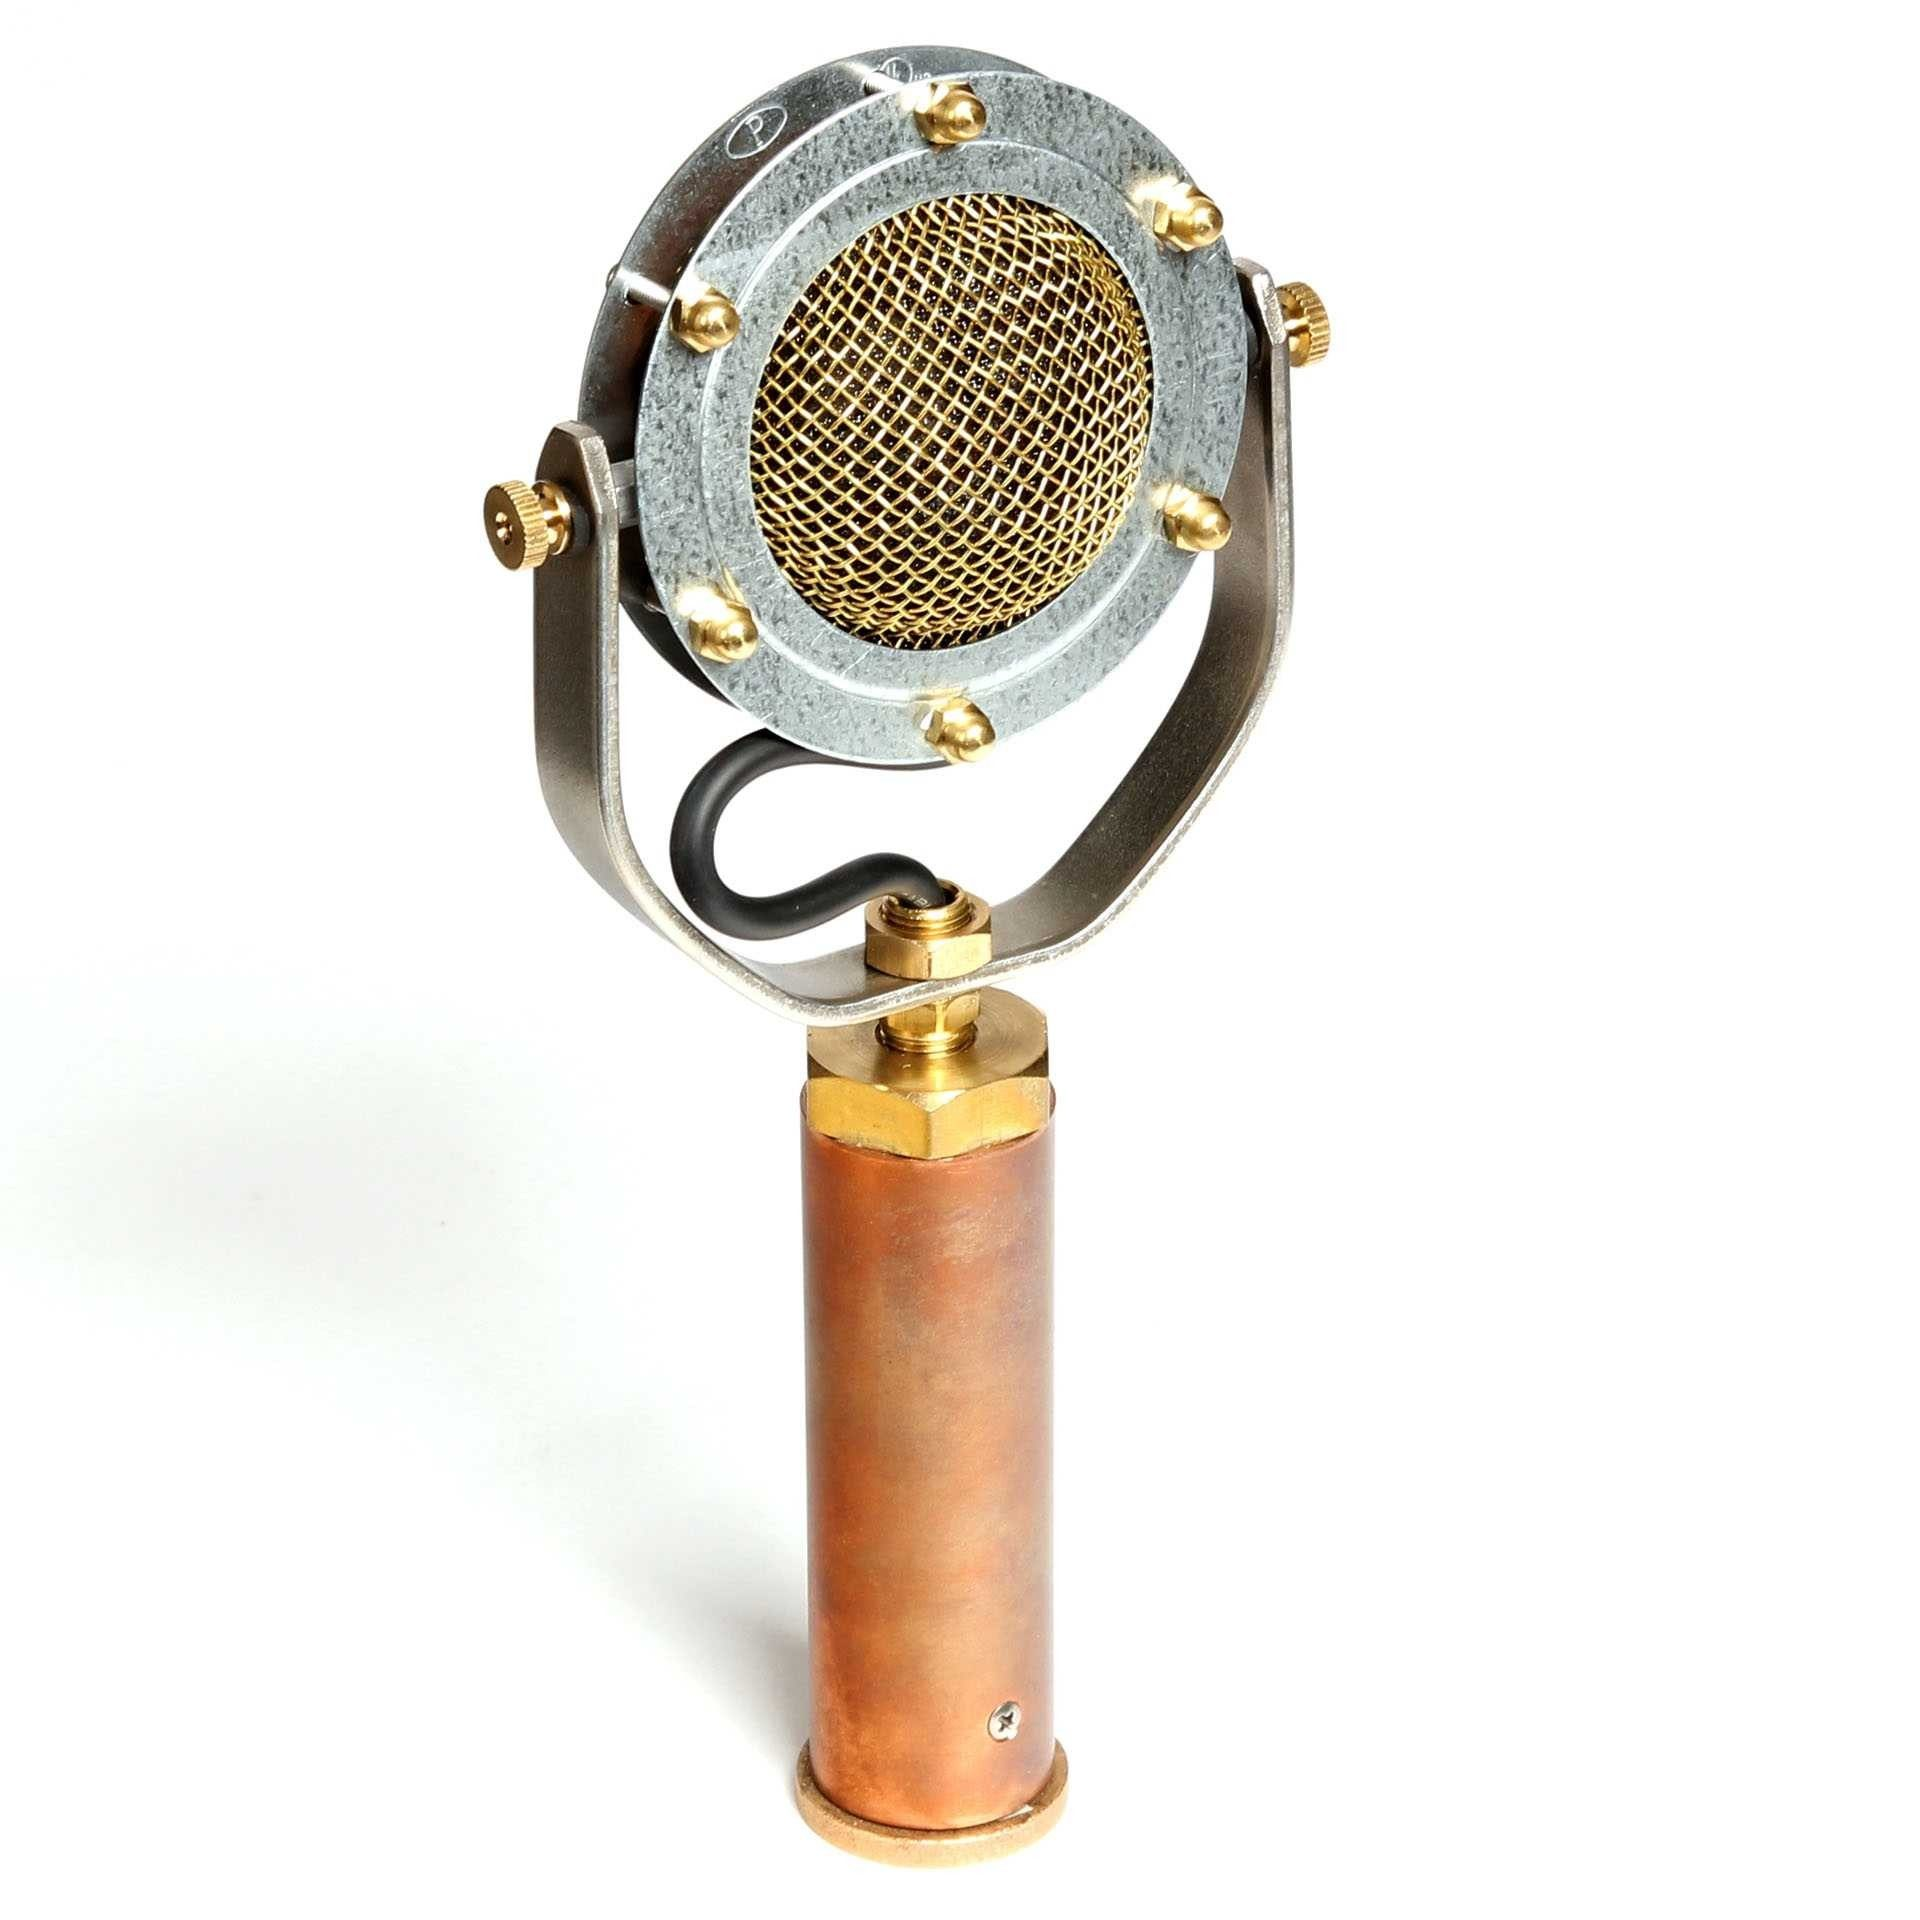 Ear Trumpet Microphone Review - Acoustic Life